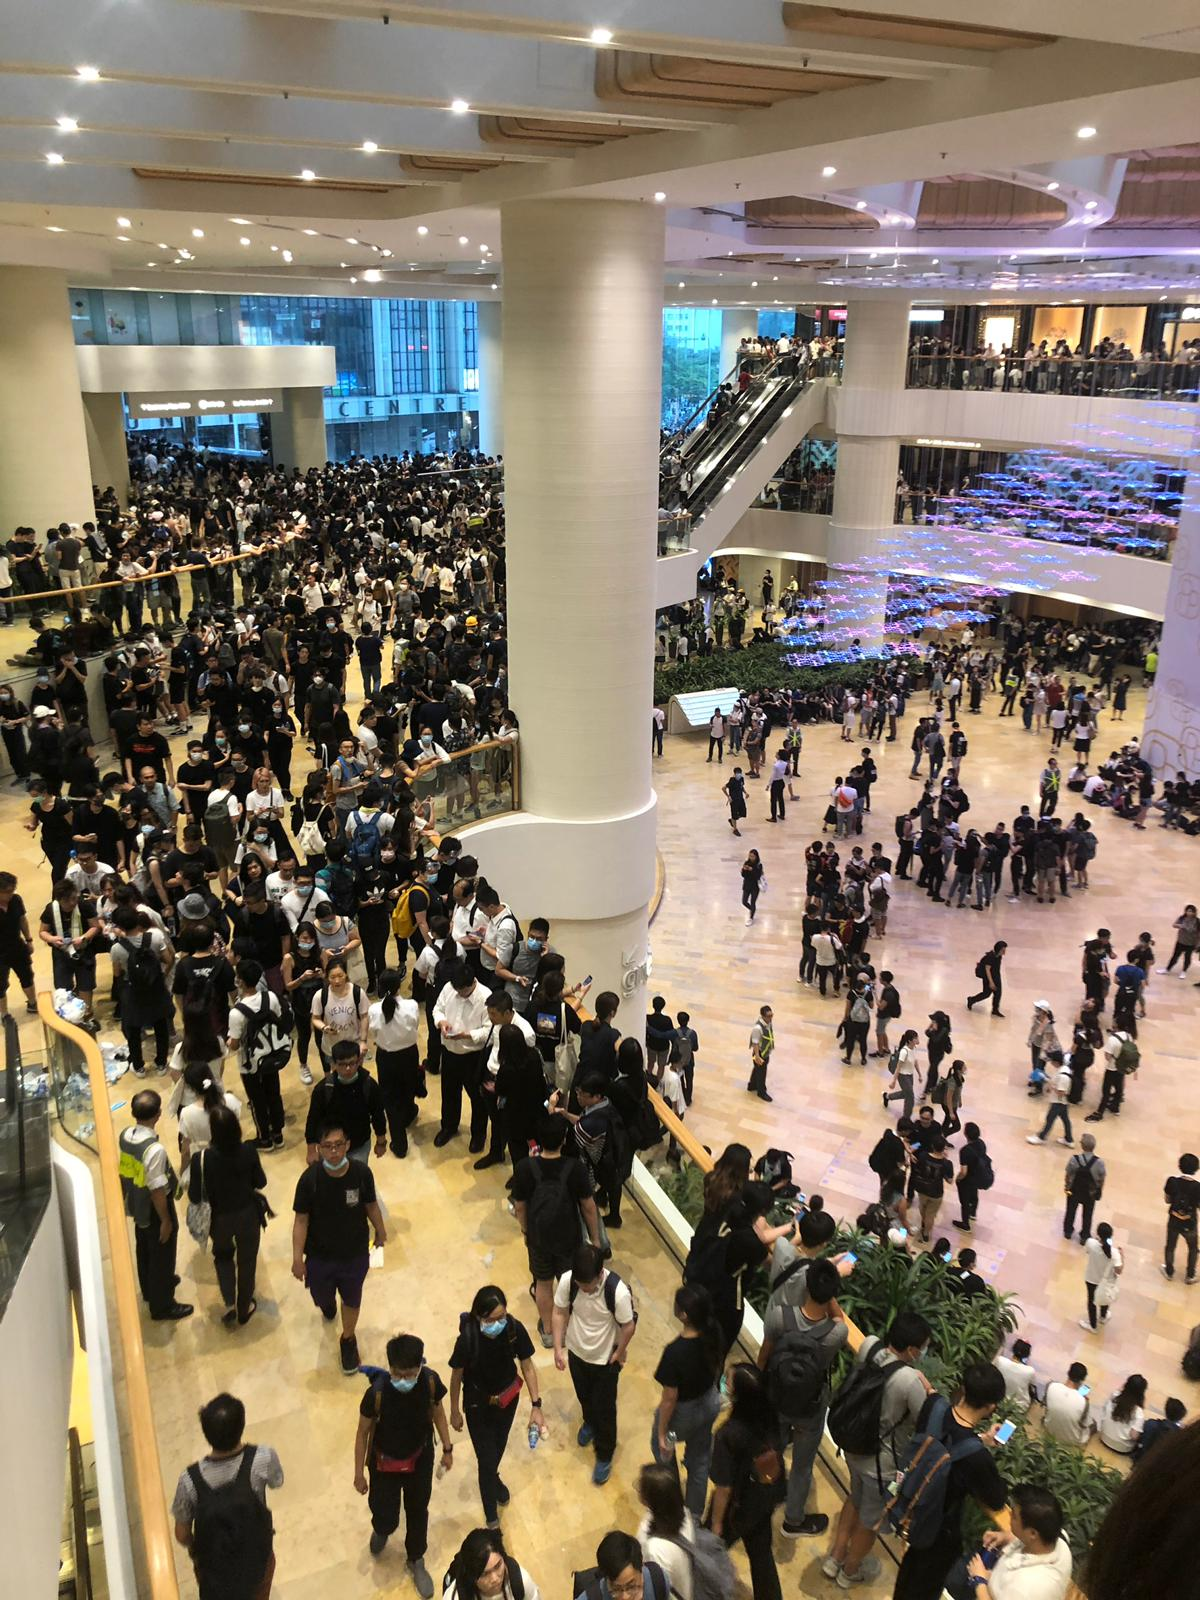 The Pacific Place mall is packed with young protestors, many wearing black shirts and face masks.